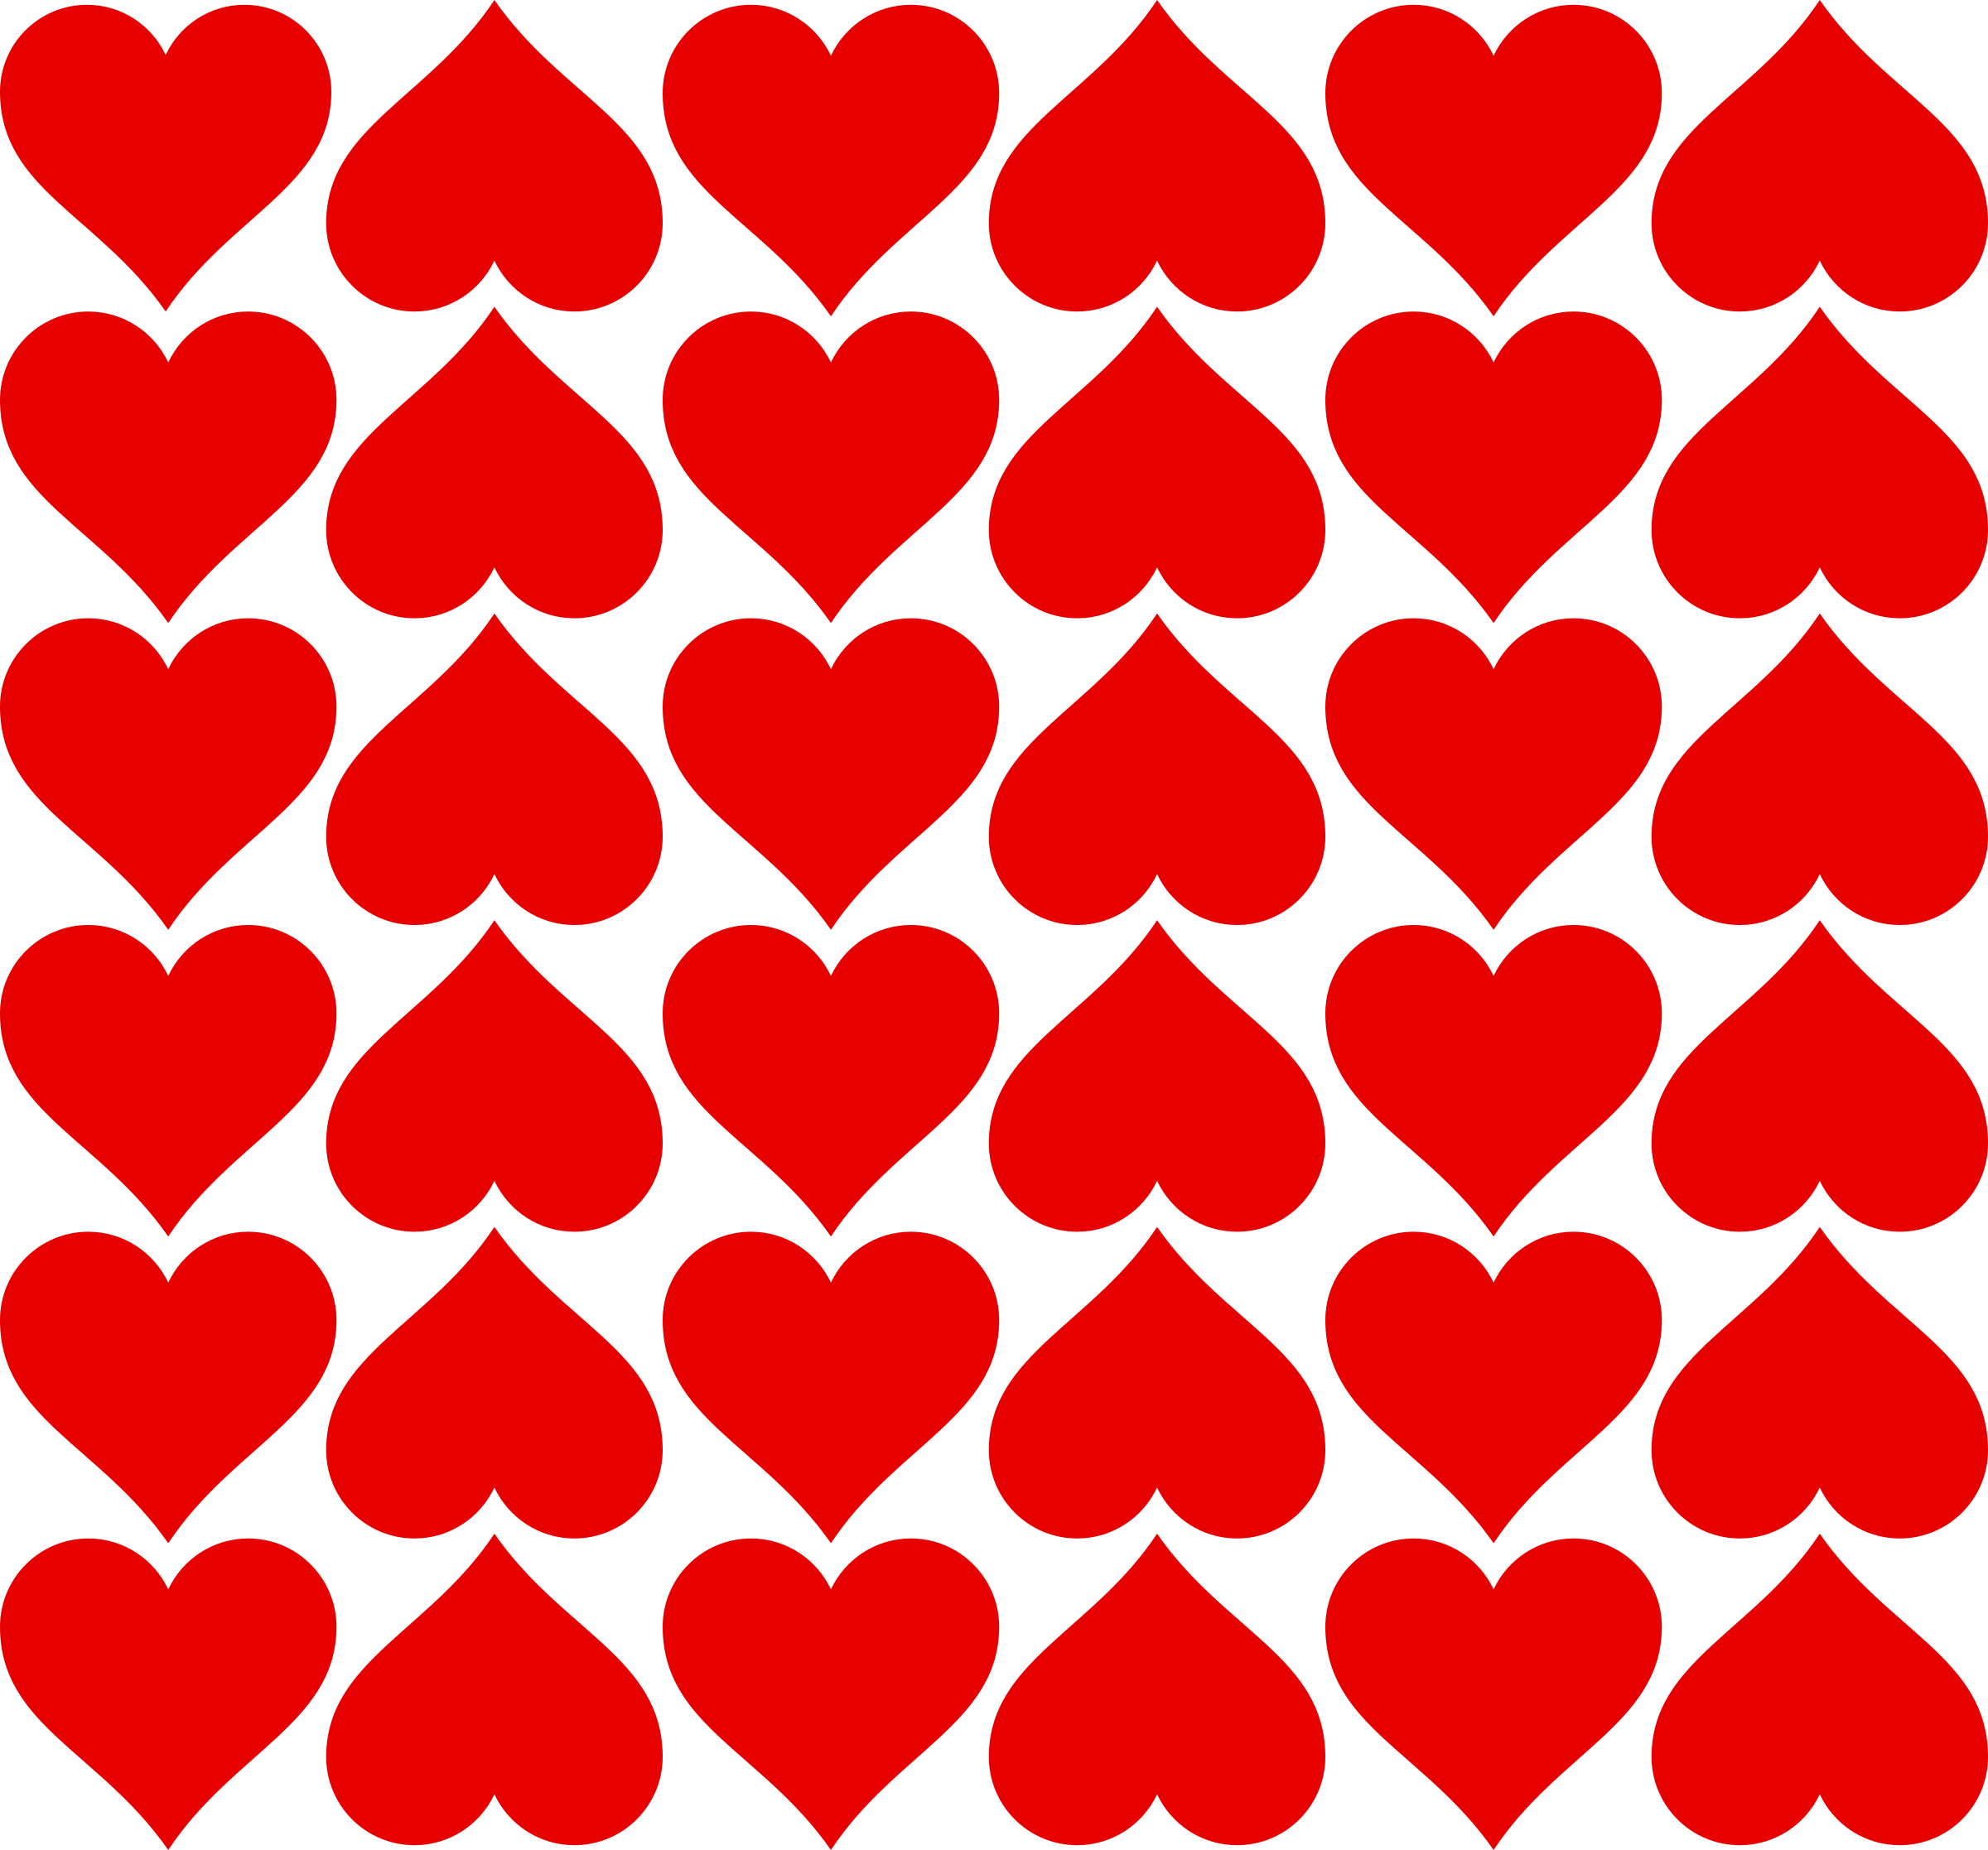 Free heart vector clipart picture Clipart - heart tiles picture